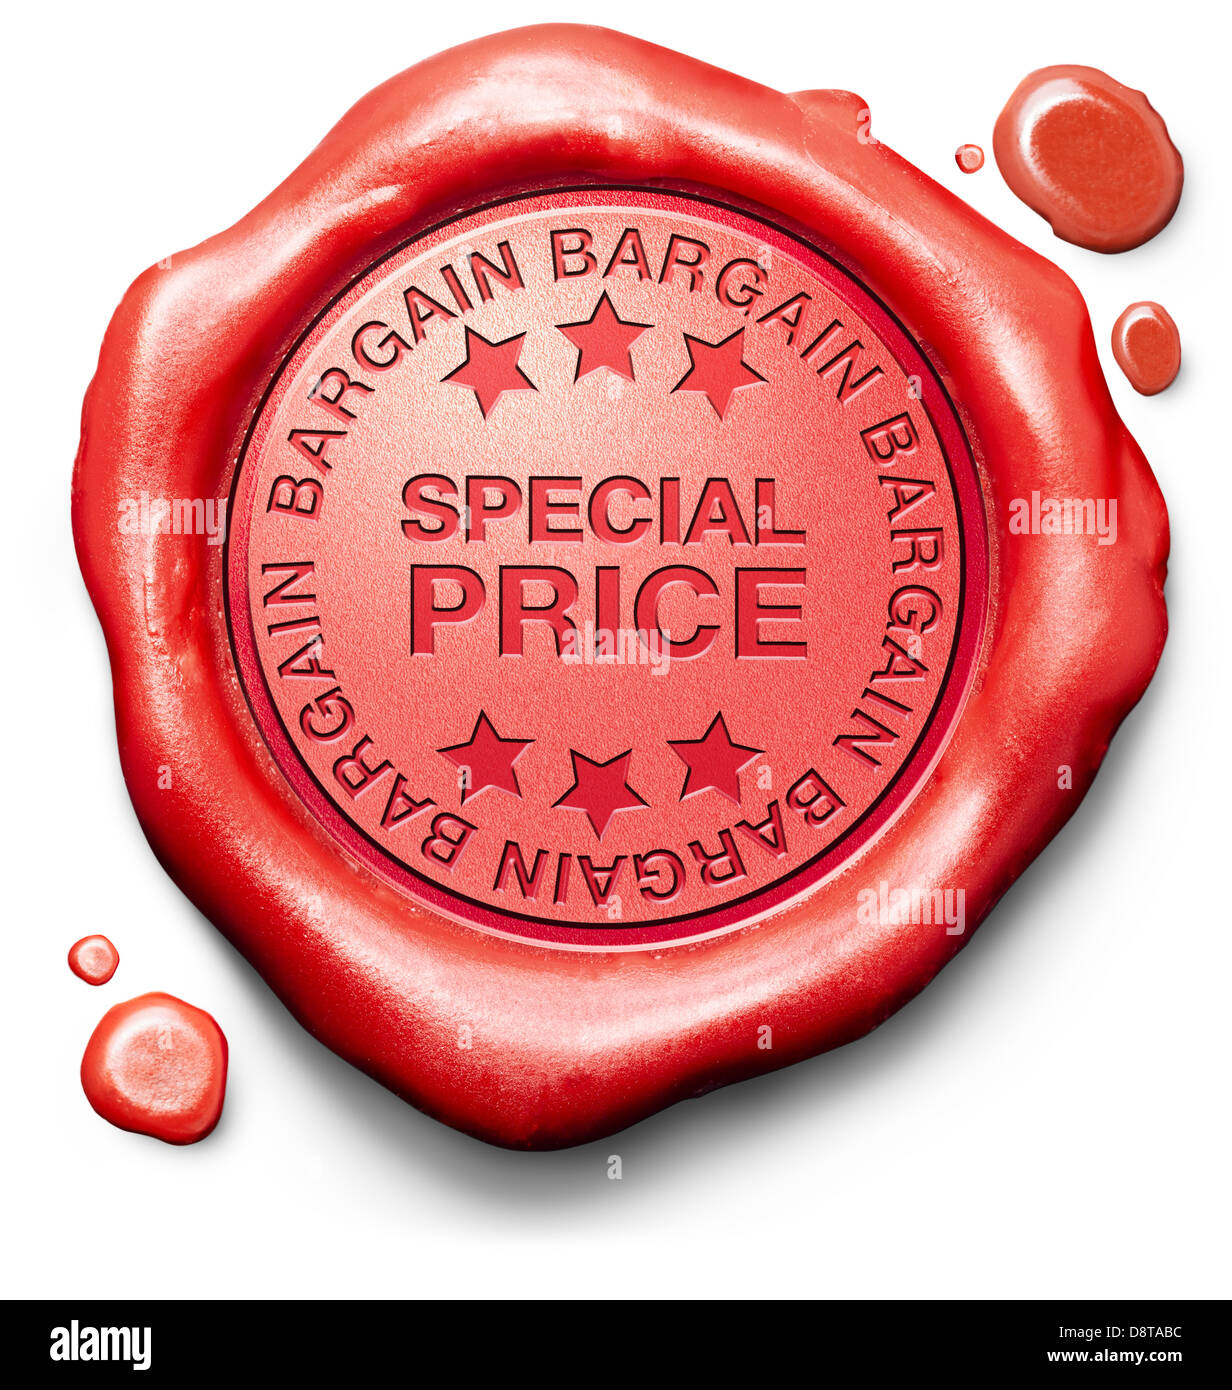 special price bargain or reduction hot offer sale red stamp label or icon - Stock Image